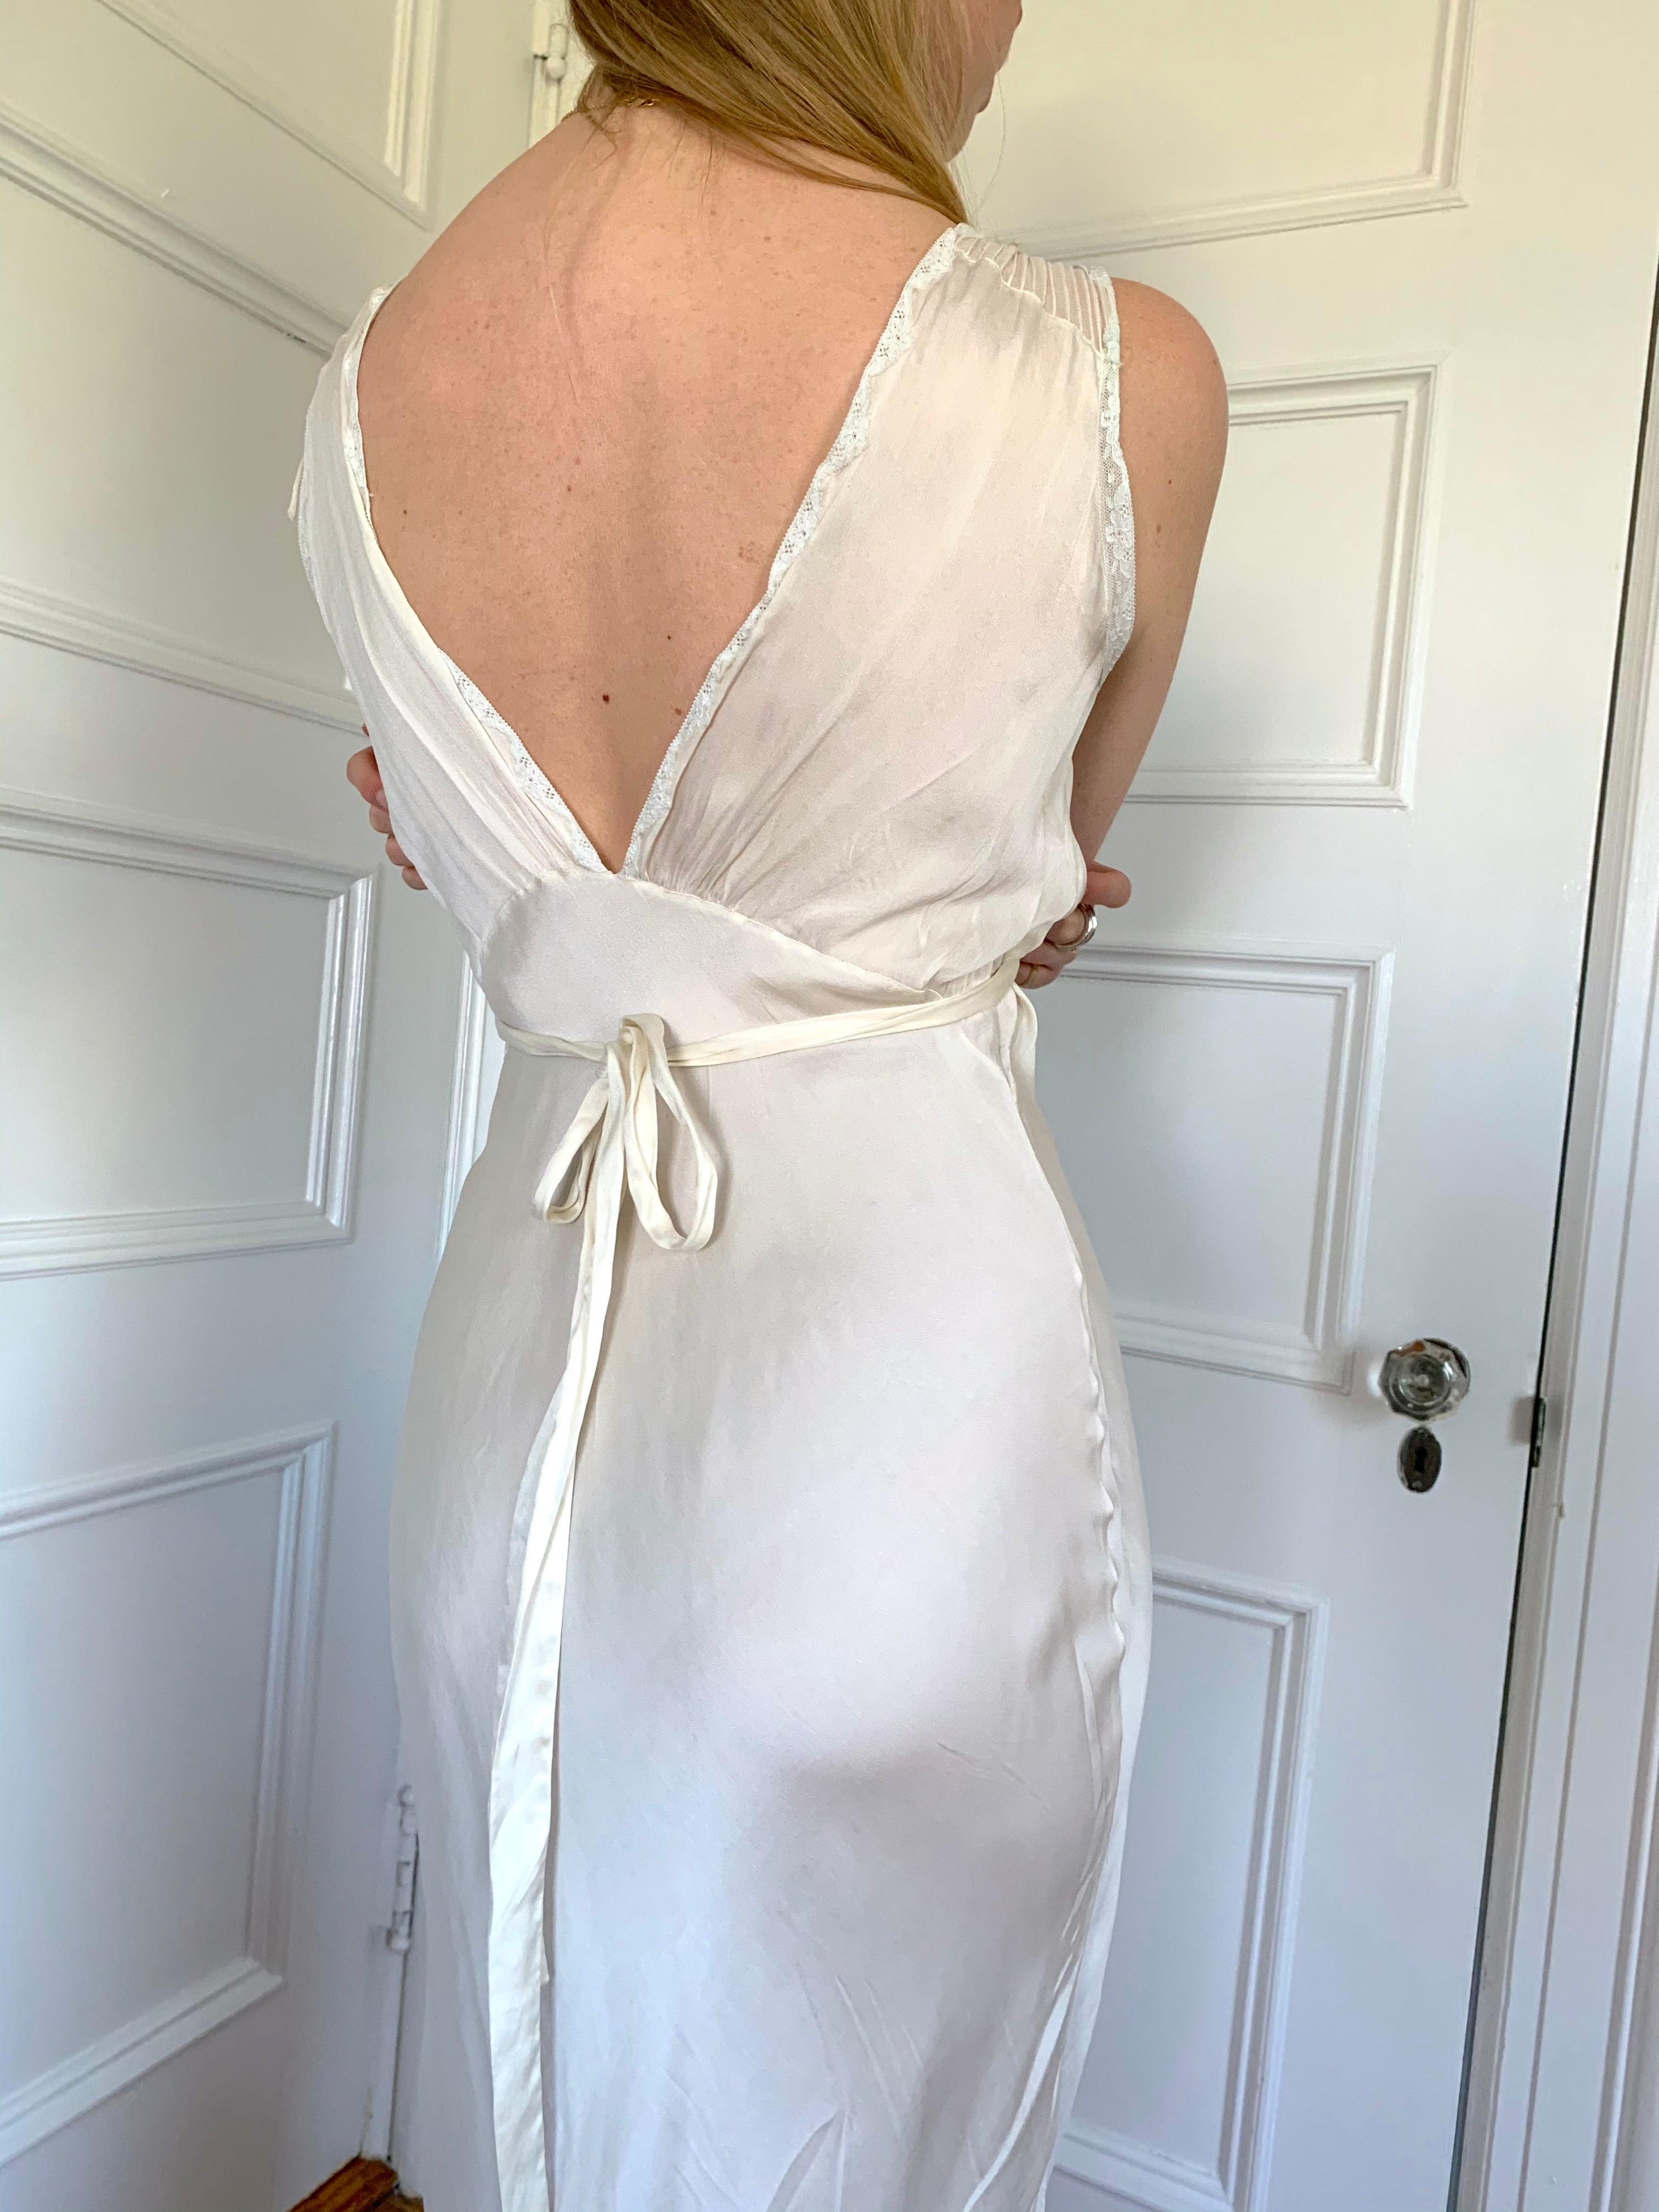 White silk slip with white lace detail